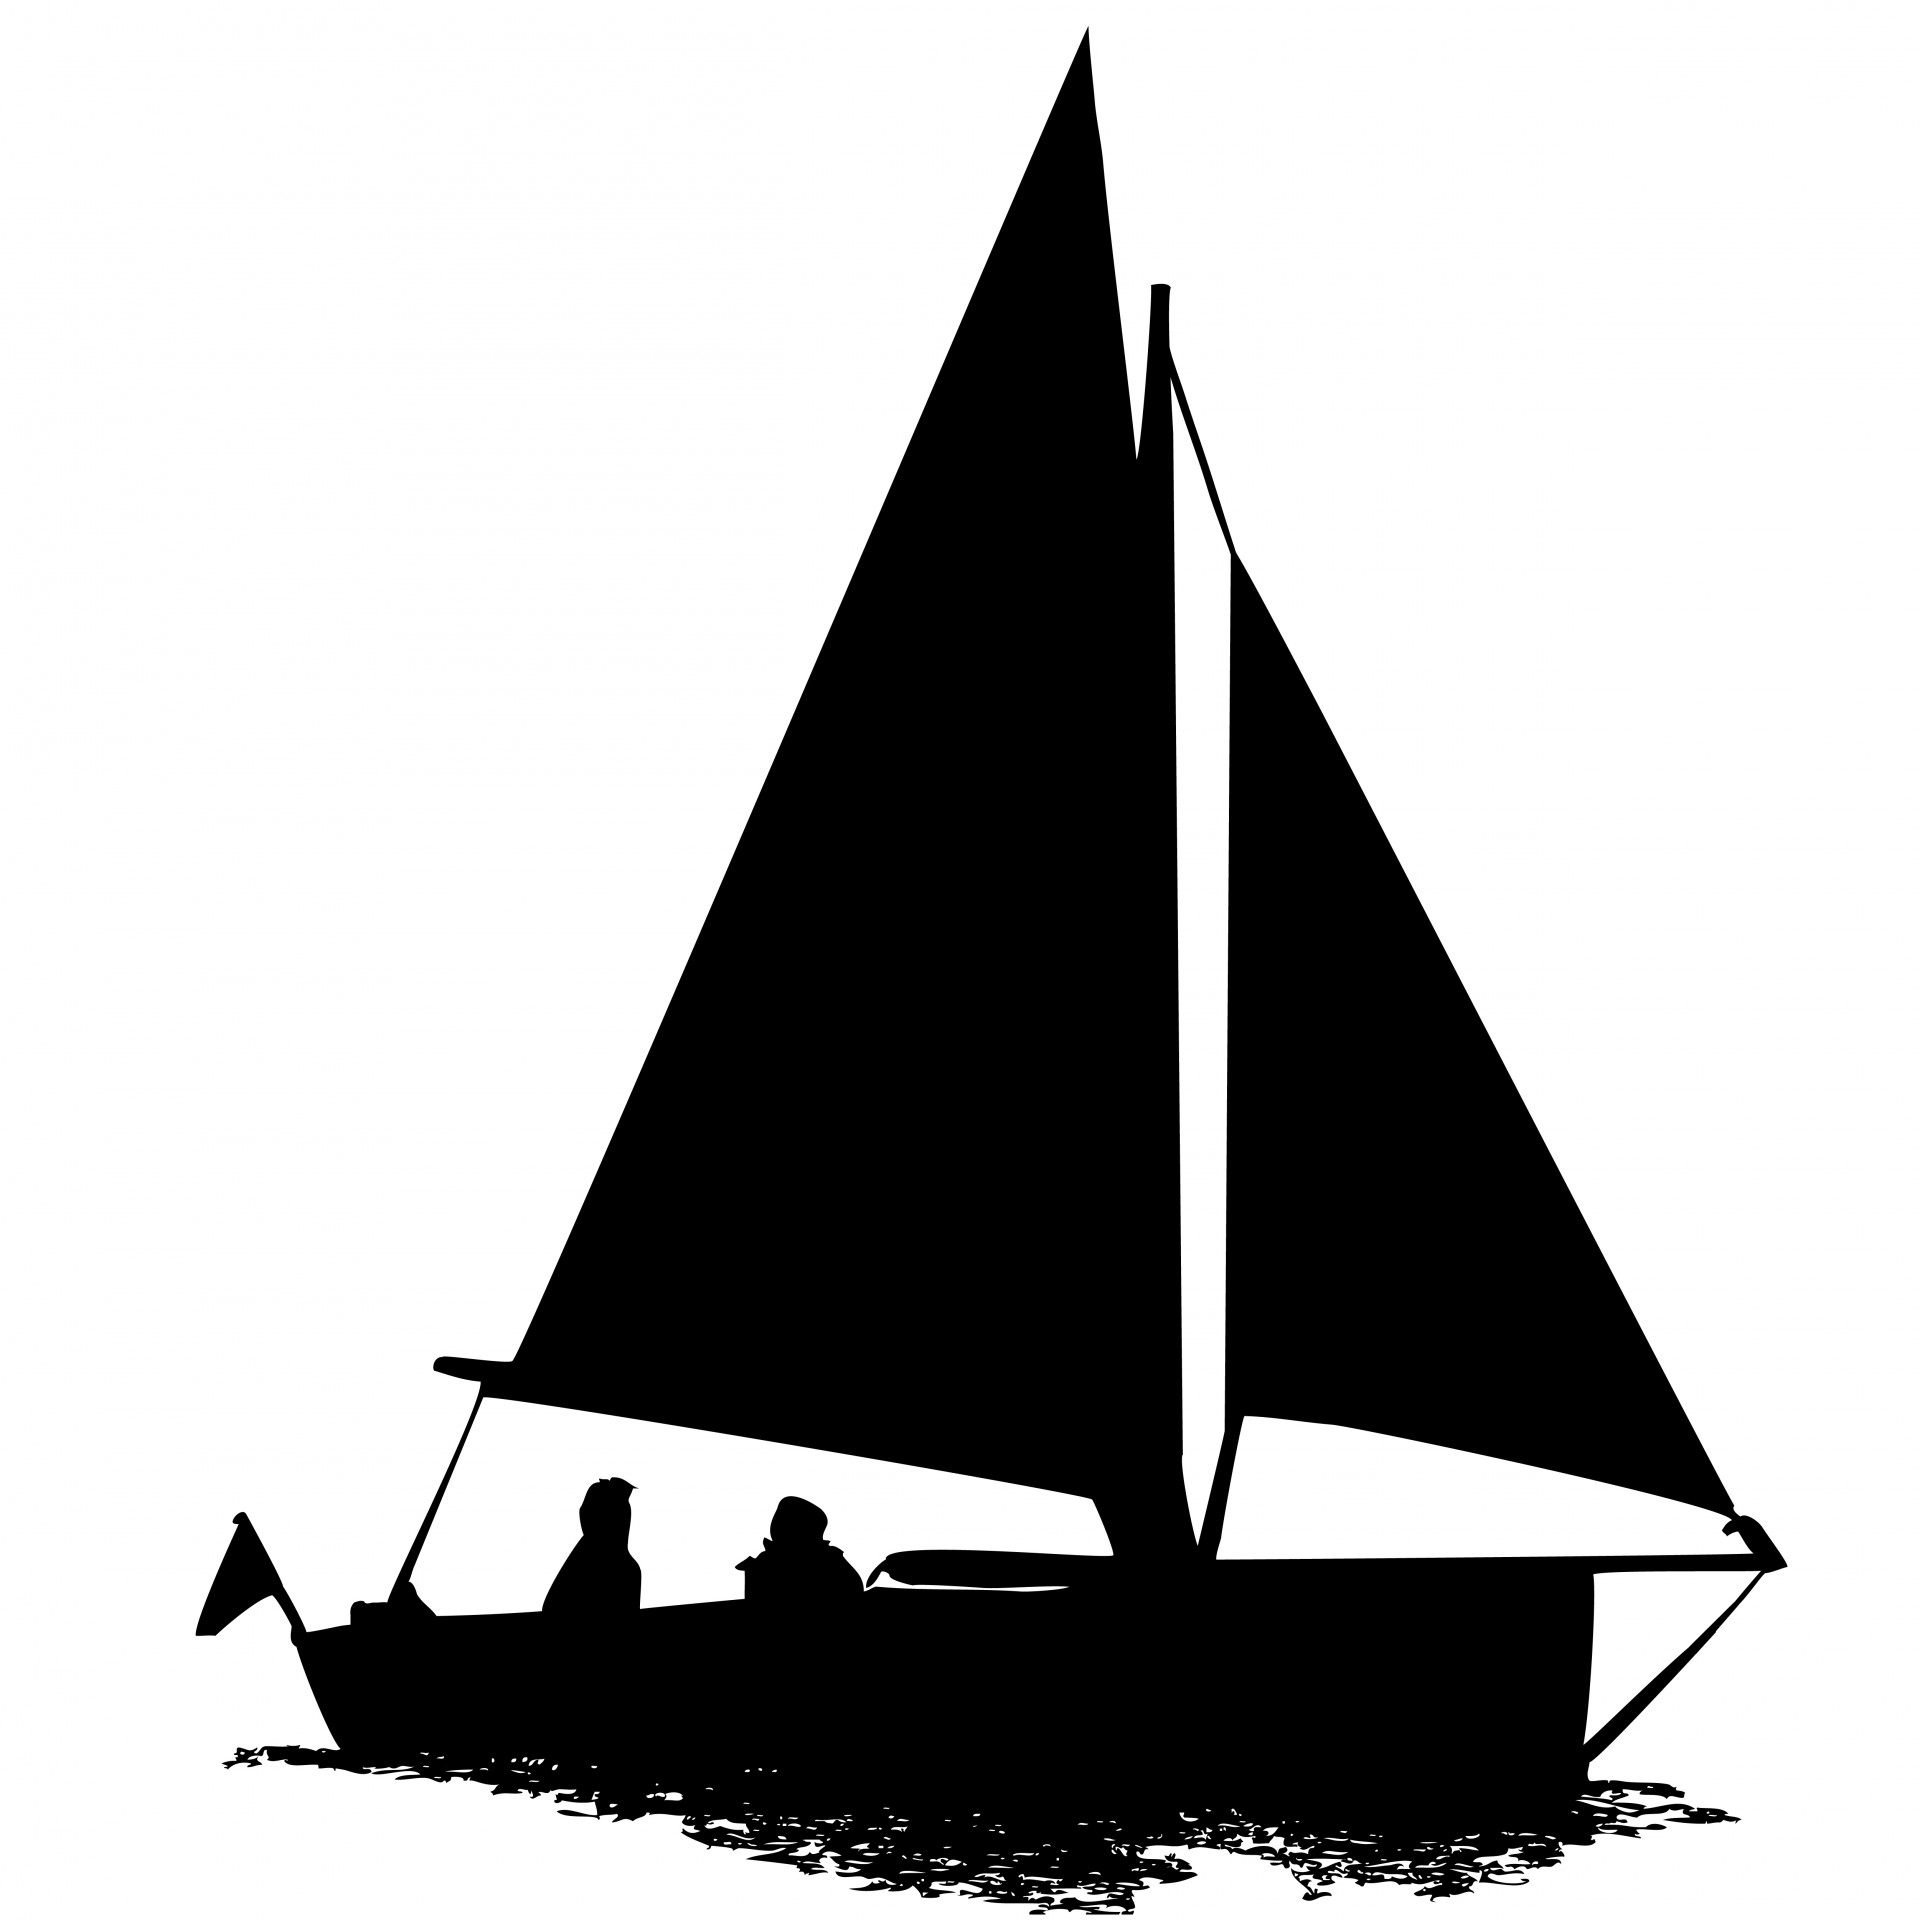 Sailing silhouette free stock. Sail clipart sale boat clip freeuse download